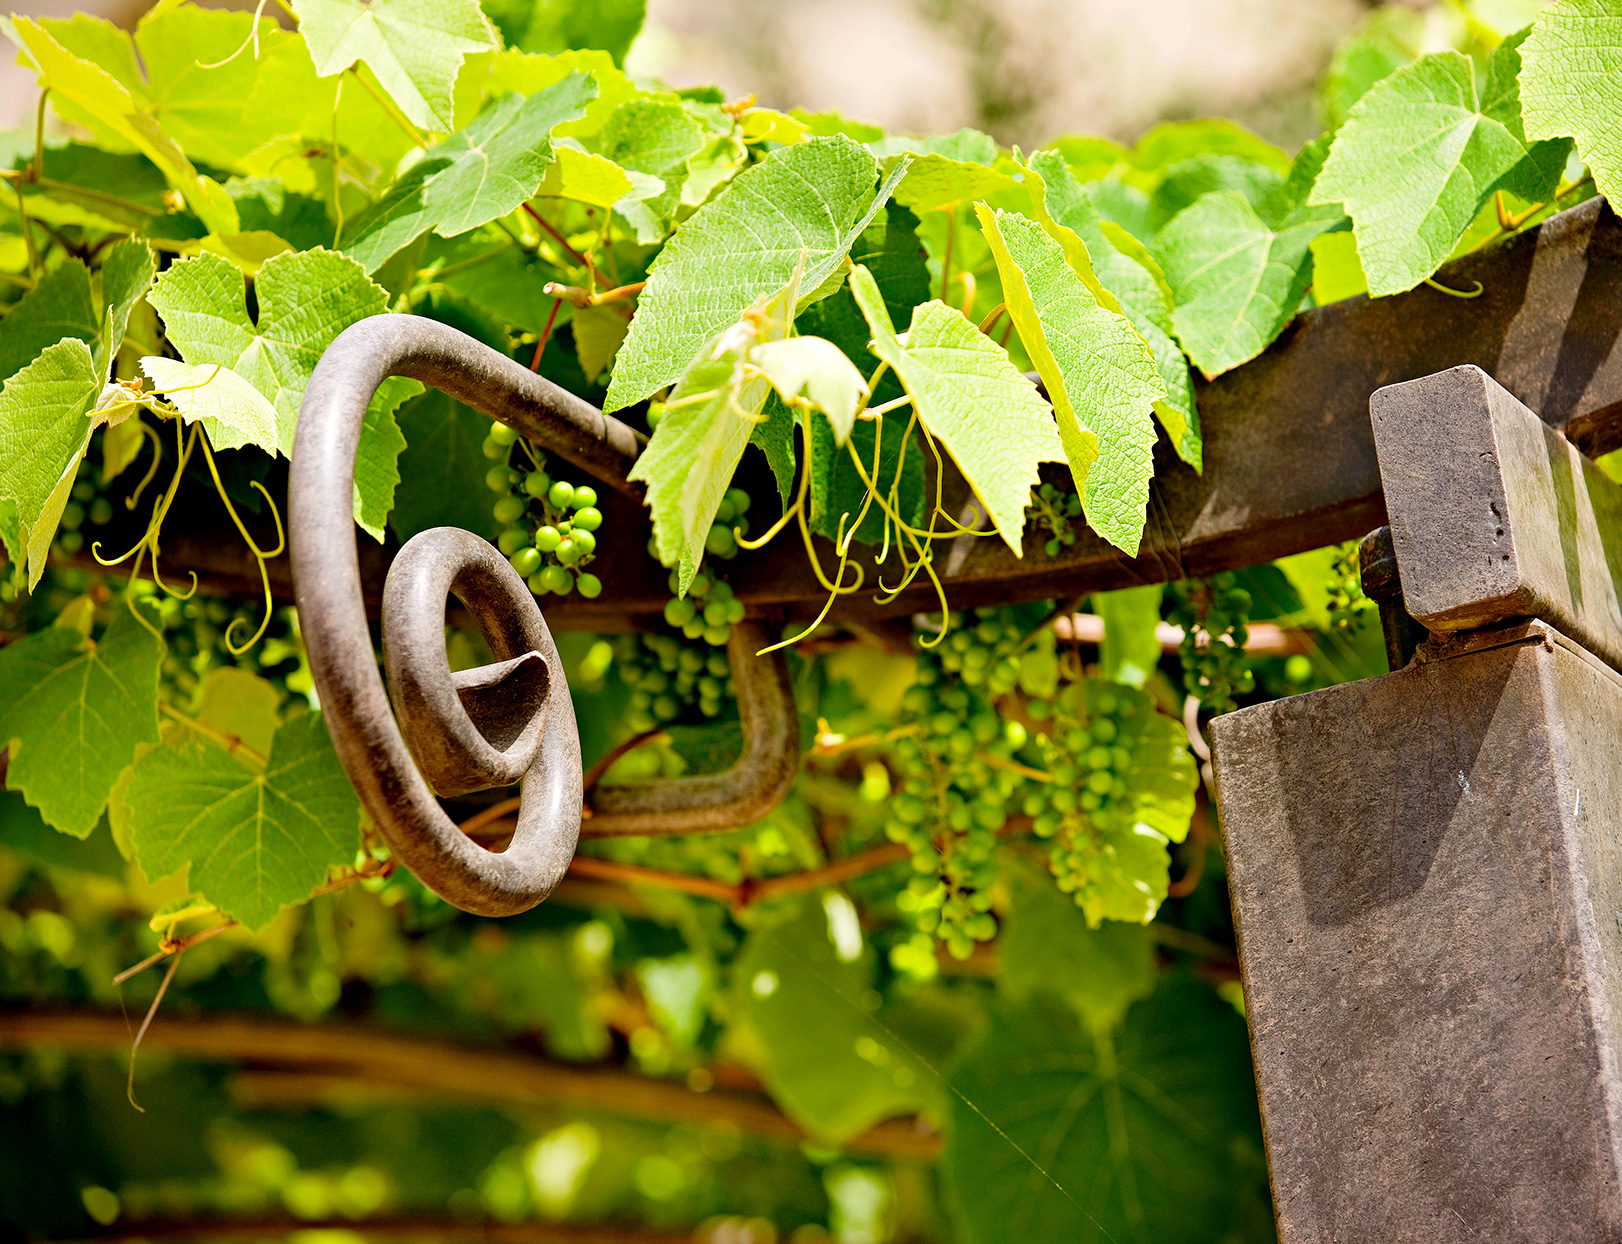 Grape vines on wooden fence